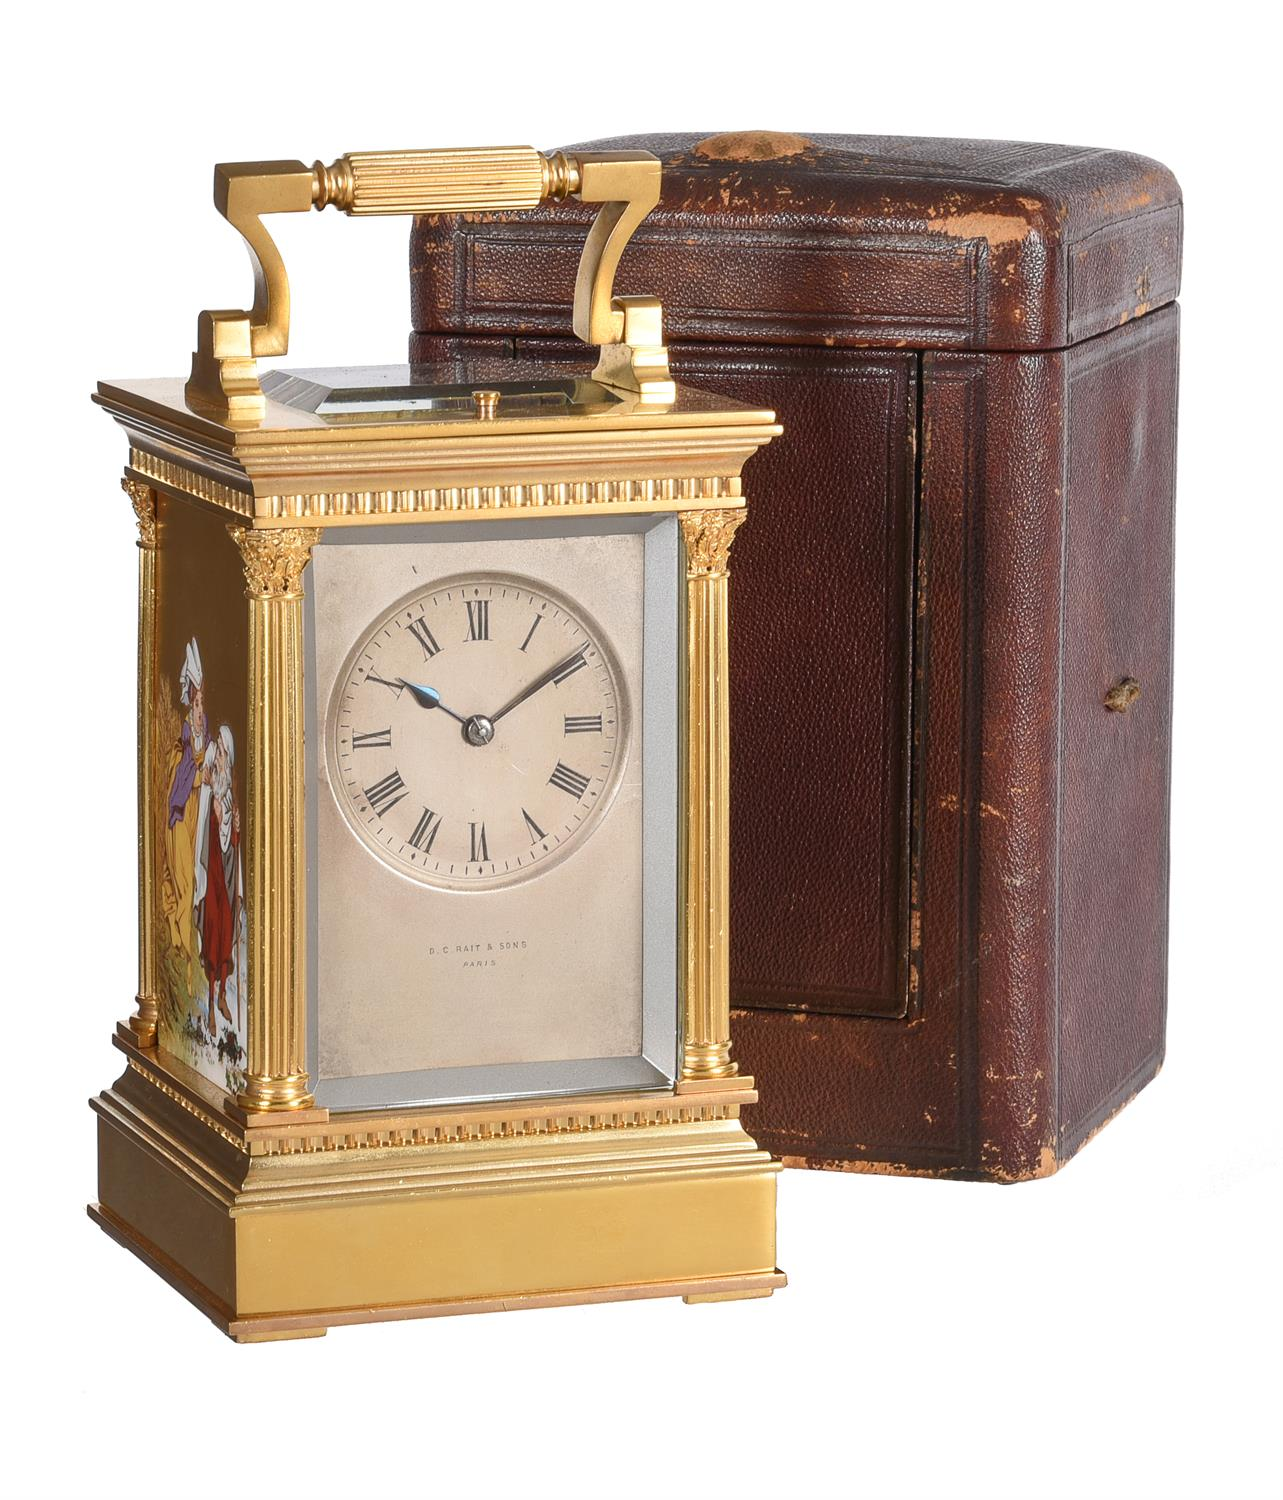 A fine French gilt brass carriage clock with painted porcelain panels and push-button repeat - Image 7 of 7